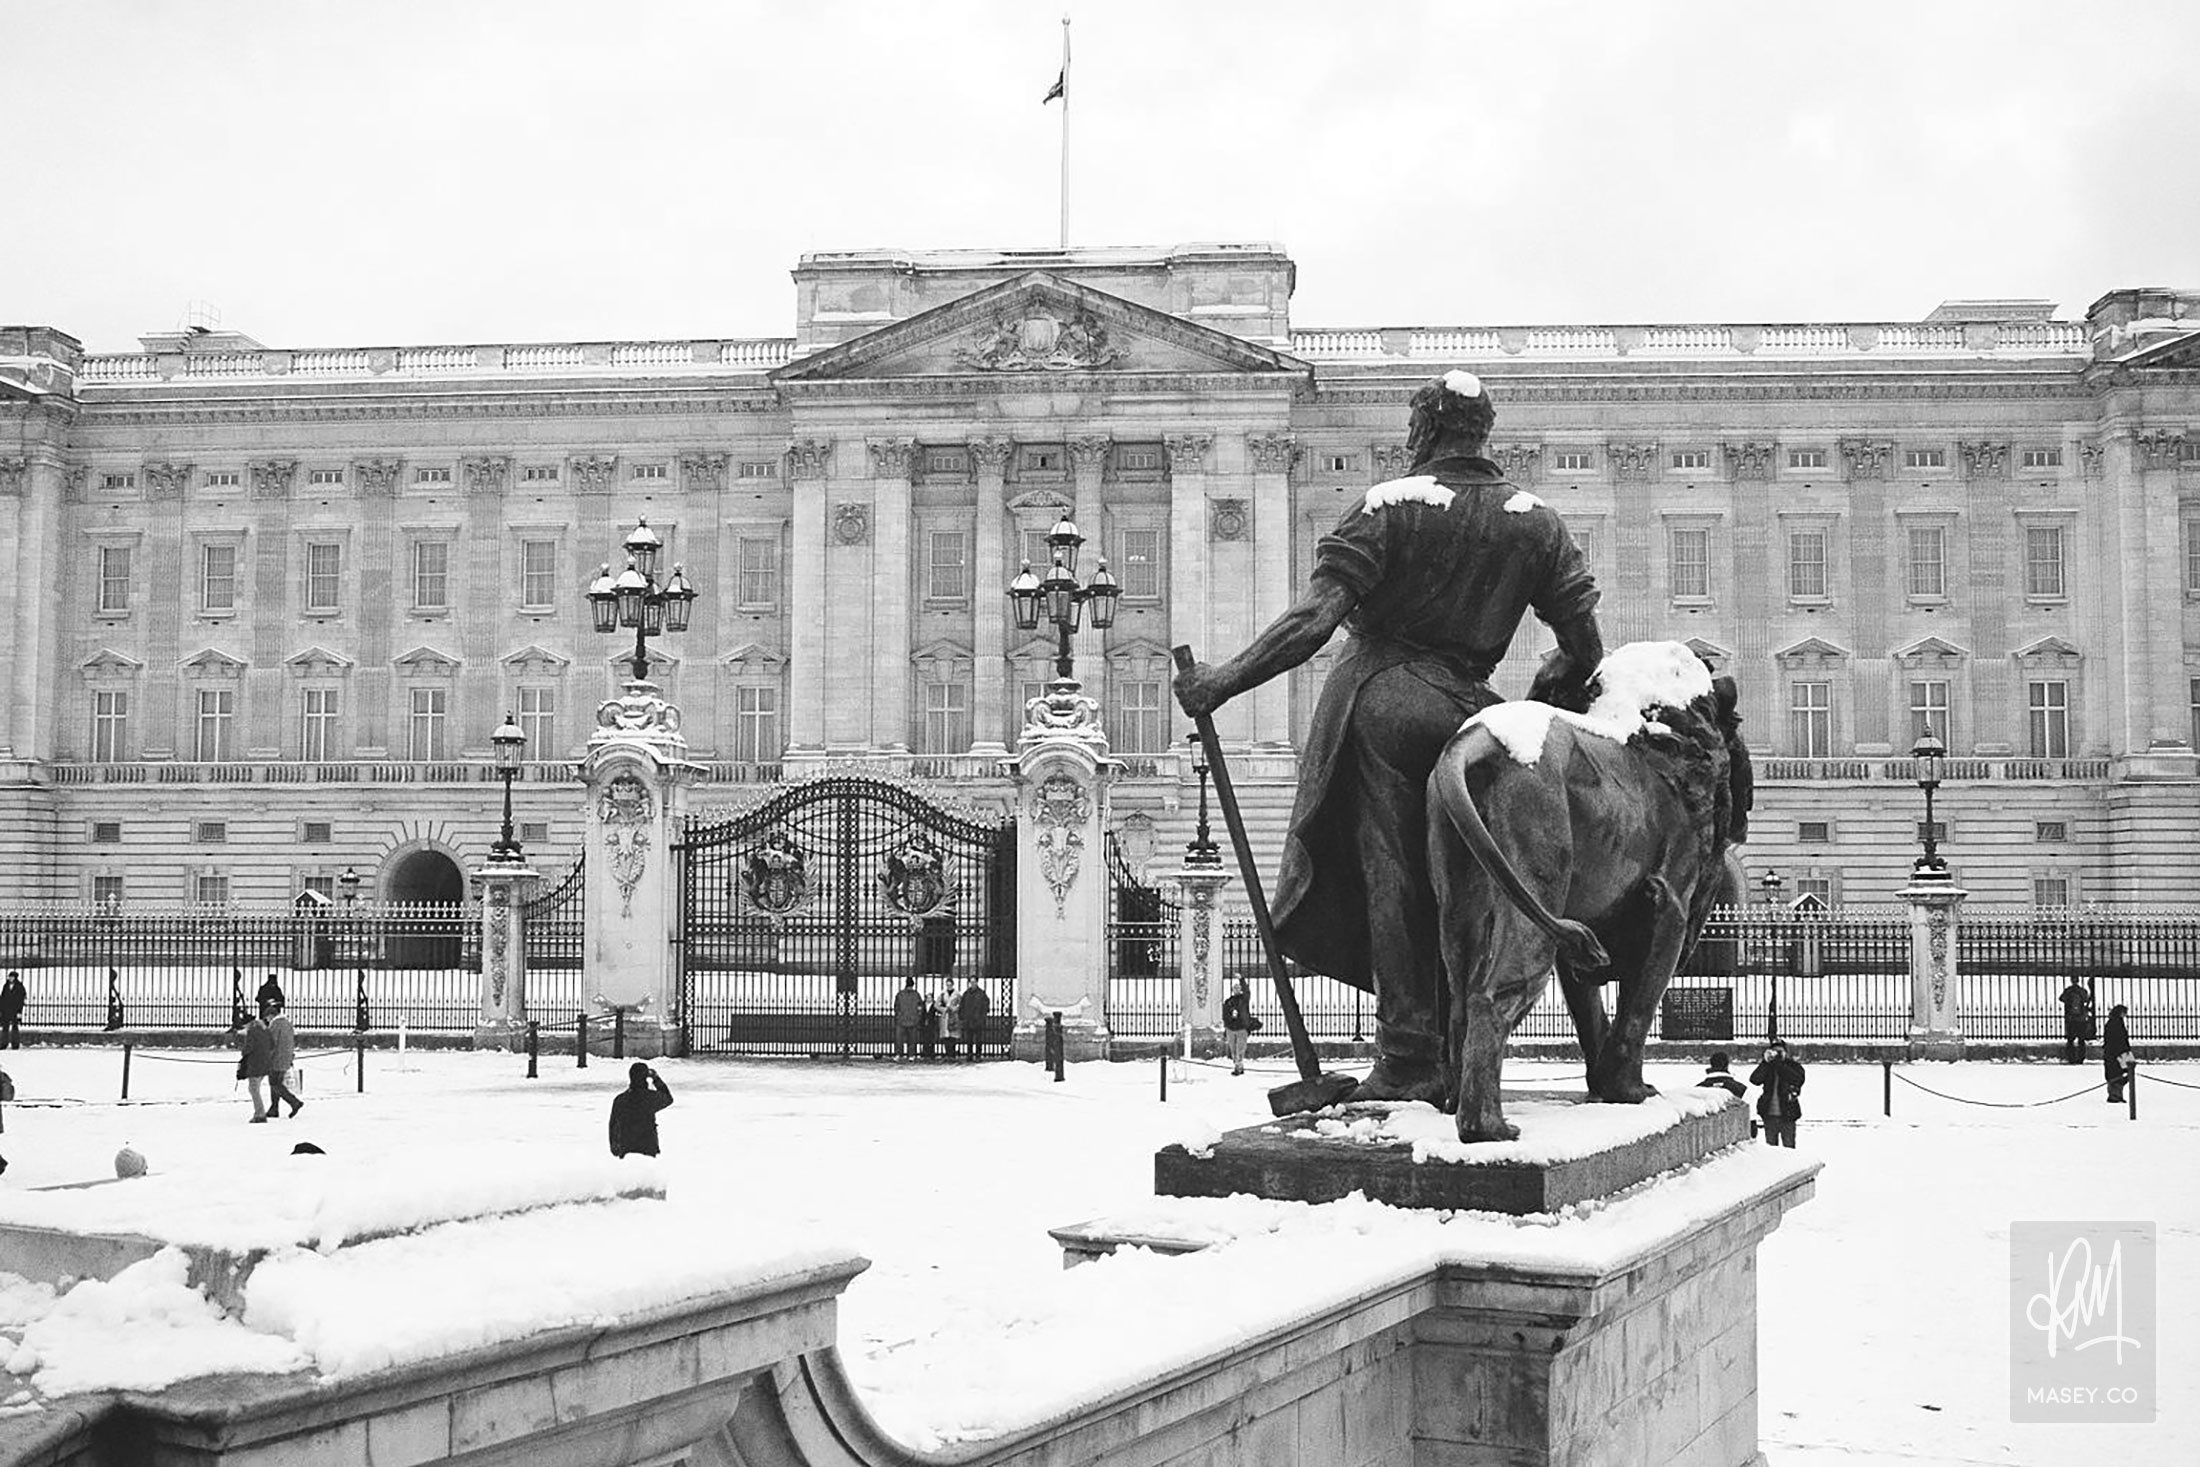 A snow-covered Buckingham Palace